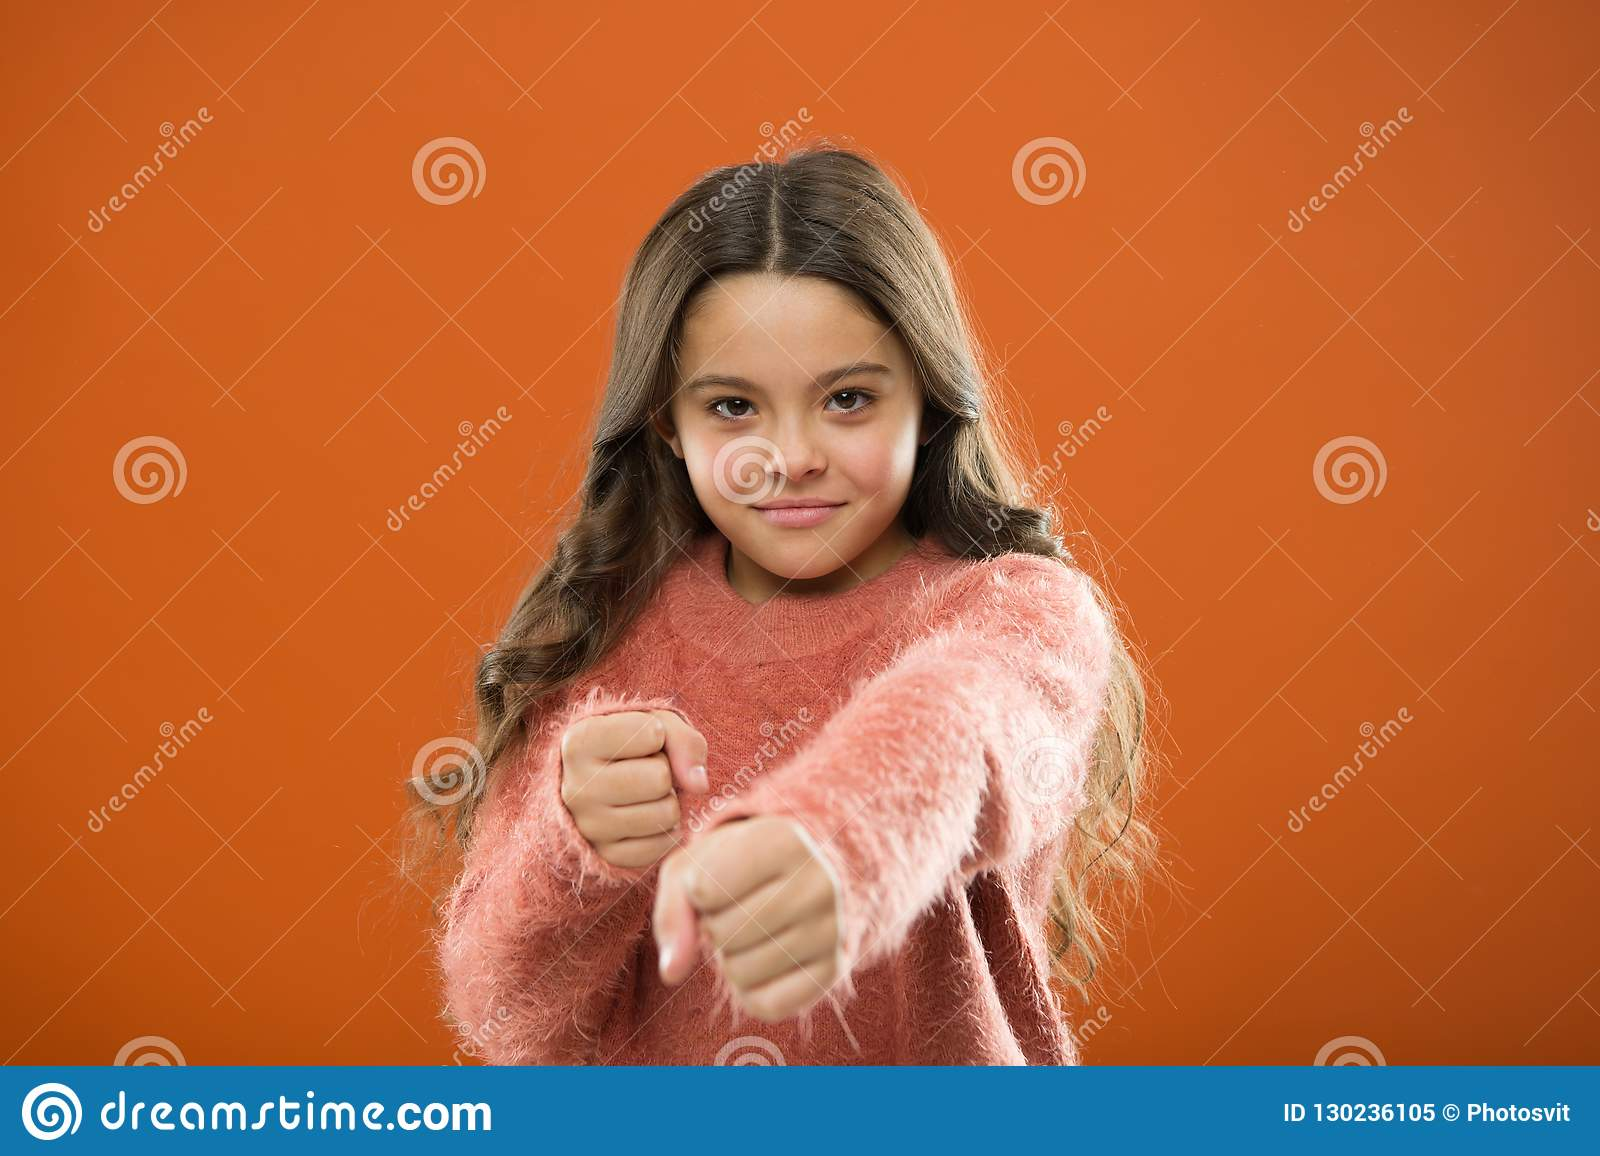 Girl hold fists ready attack or defend. Girl child cute but strong. Self defense for kids. Defend Innocence. How teach